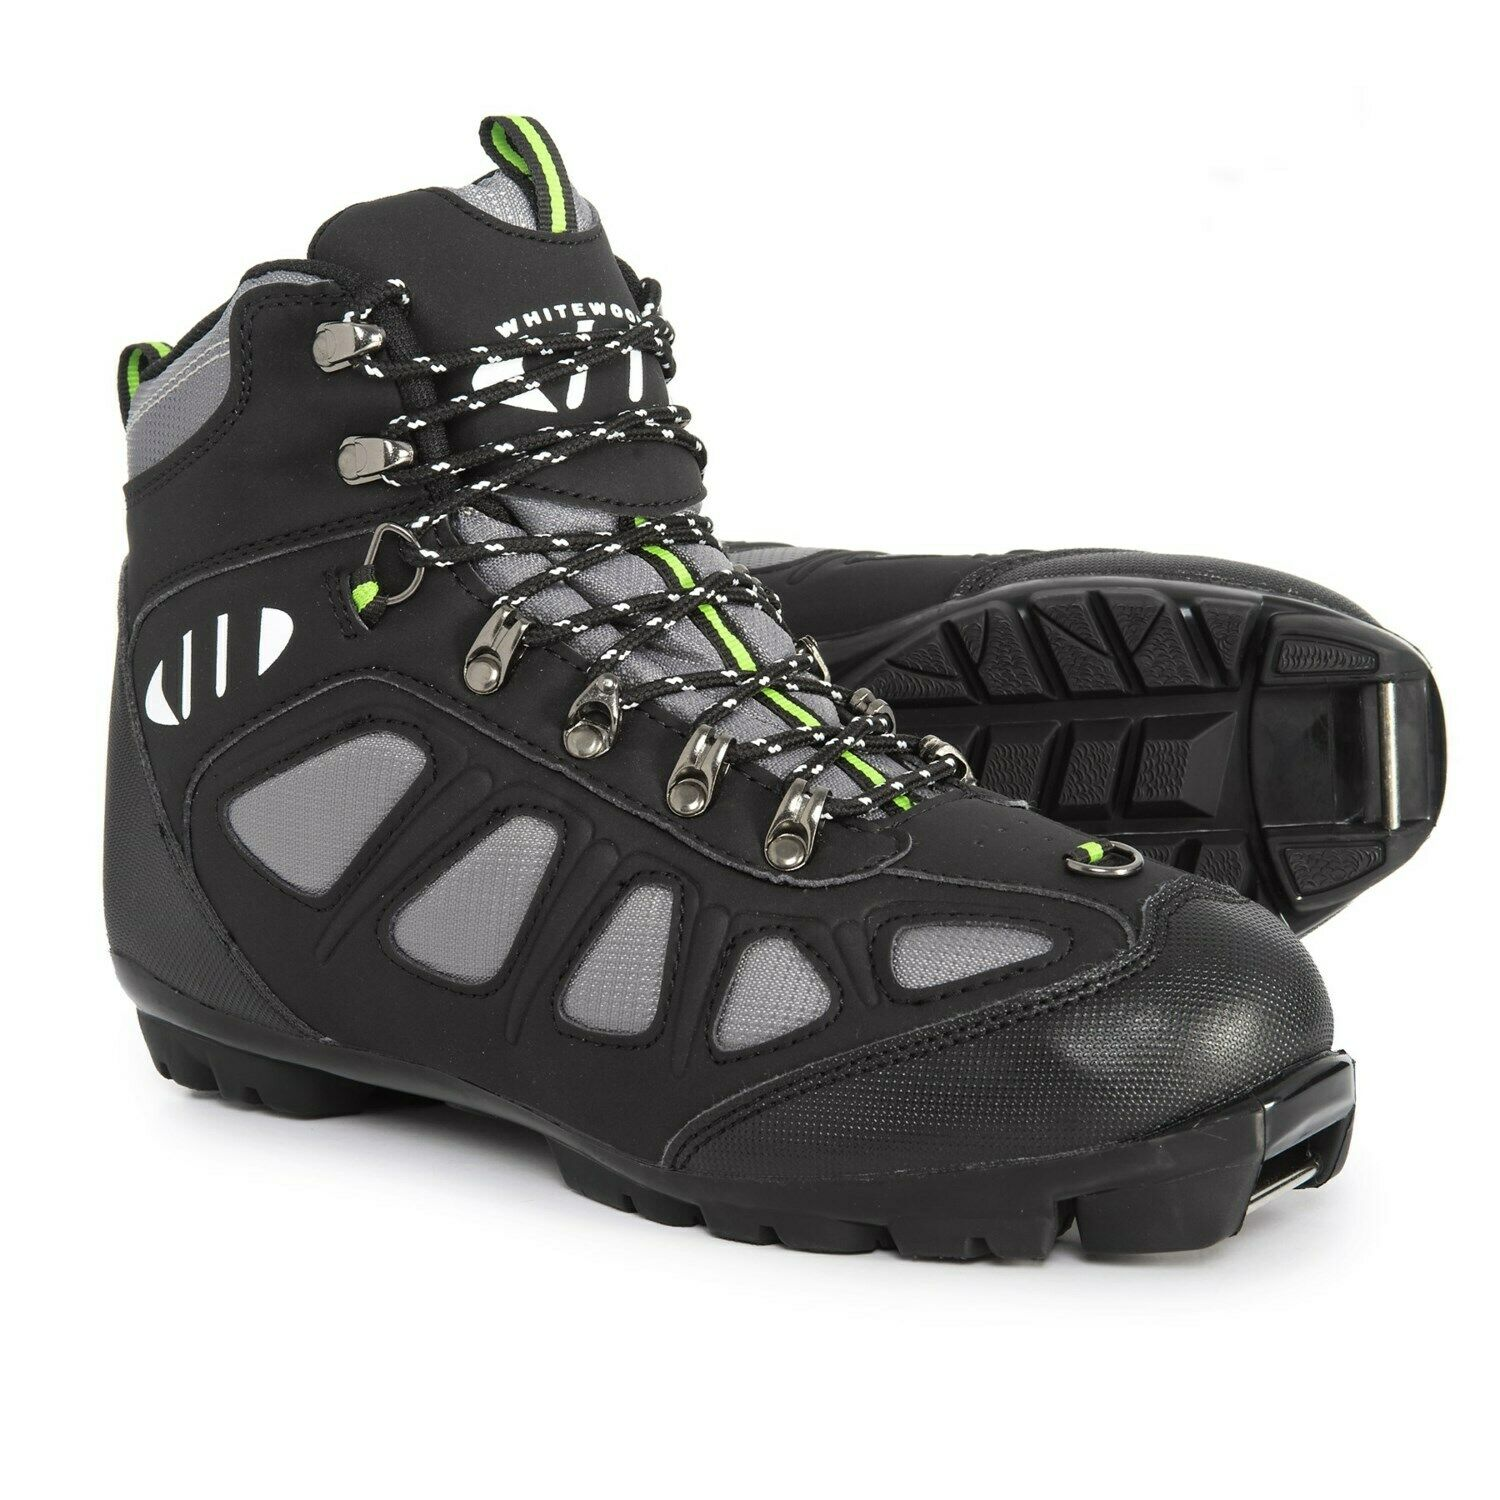 Whitewoods 302 boot XC  NNN Size 33 (1M 2W 32EUR) boots cross country ski New  come to choose your own sports style